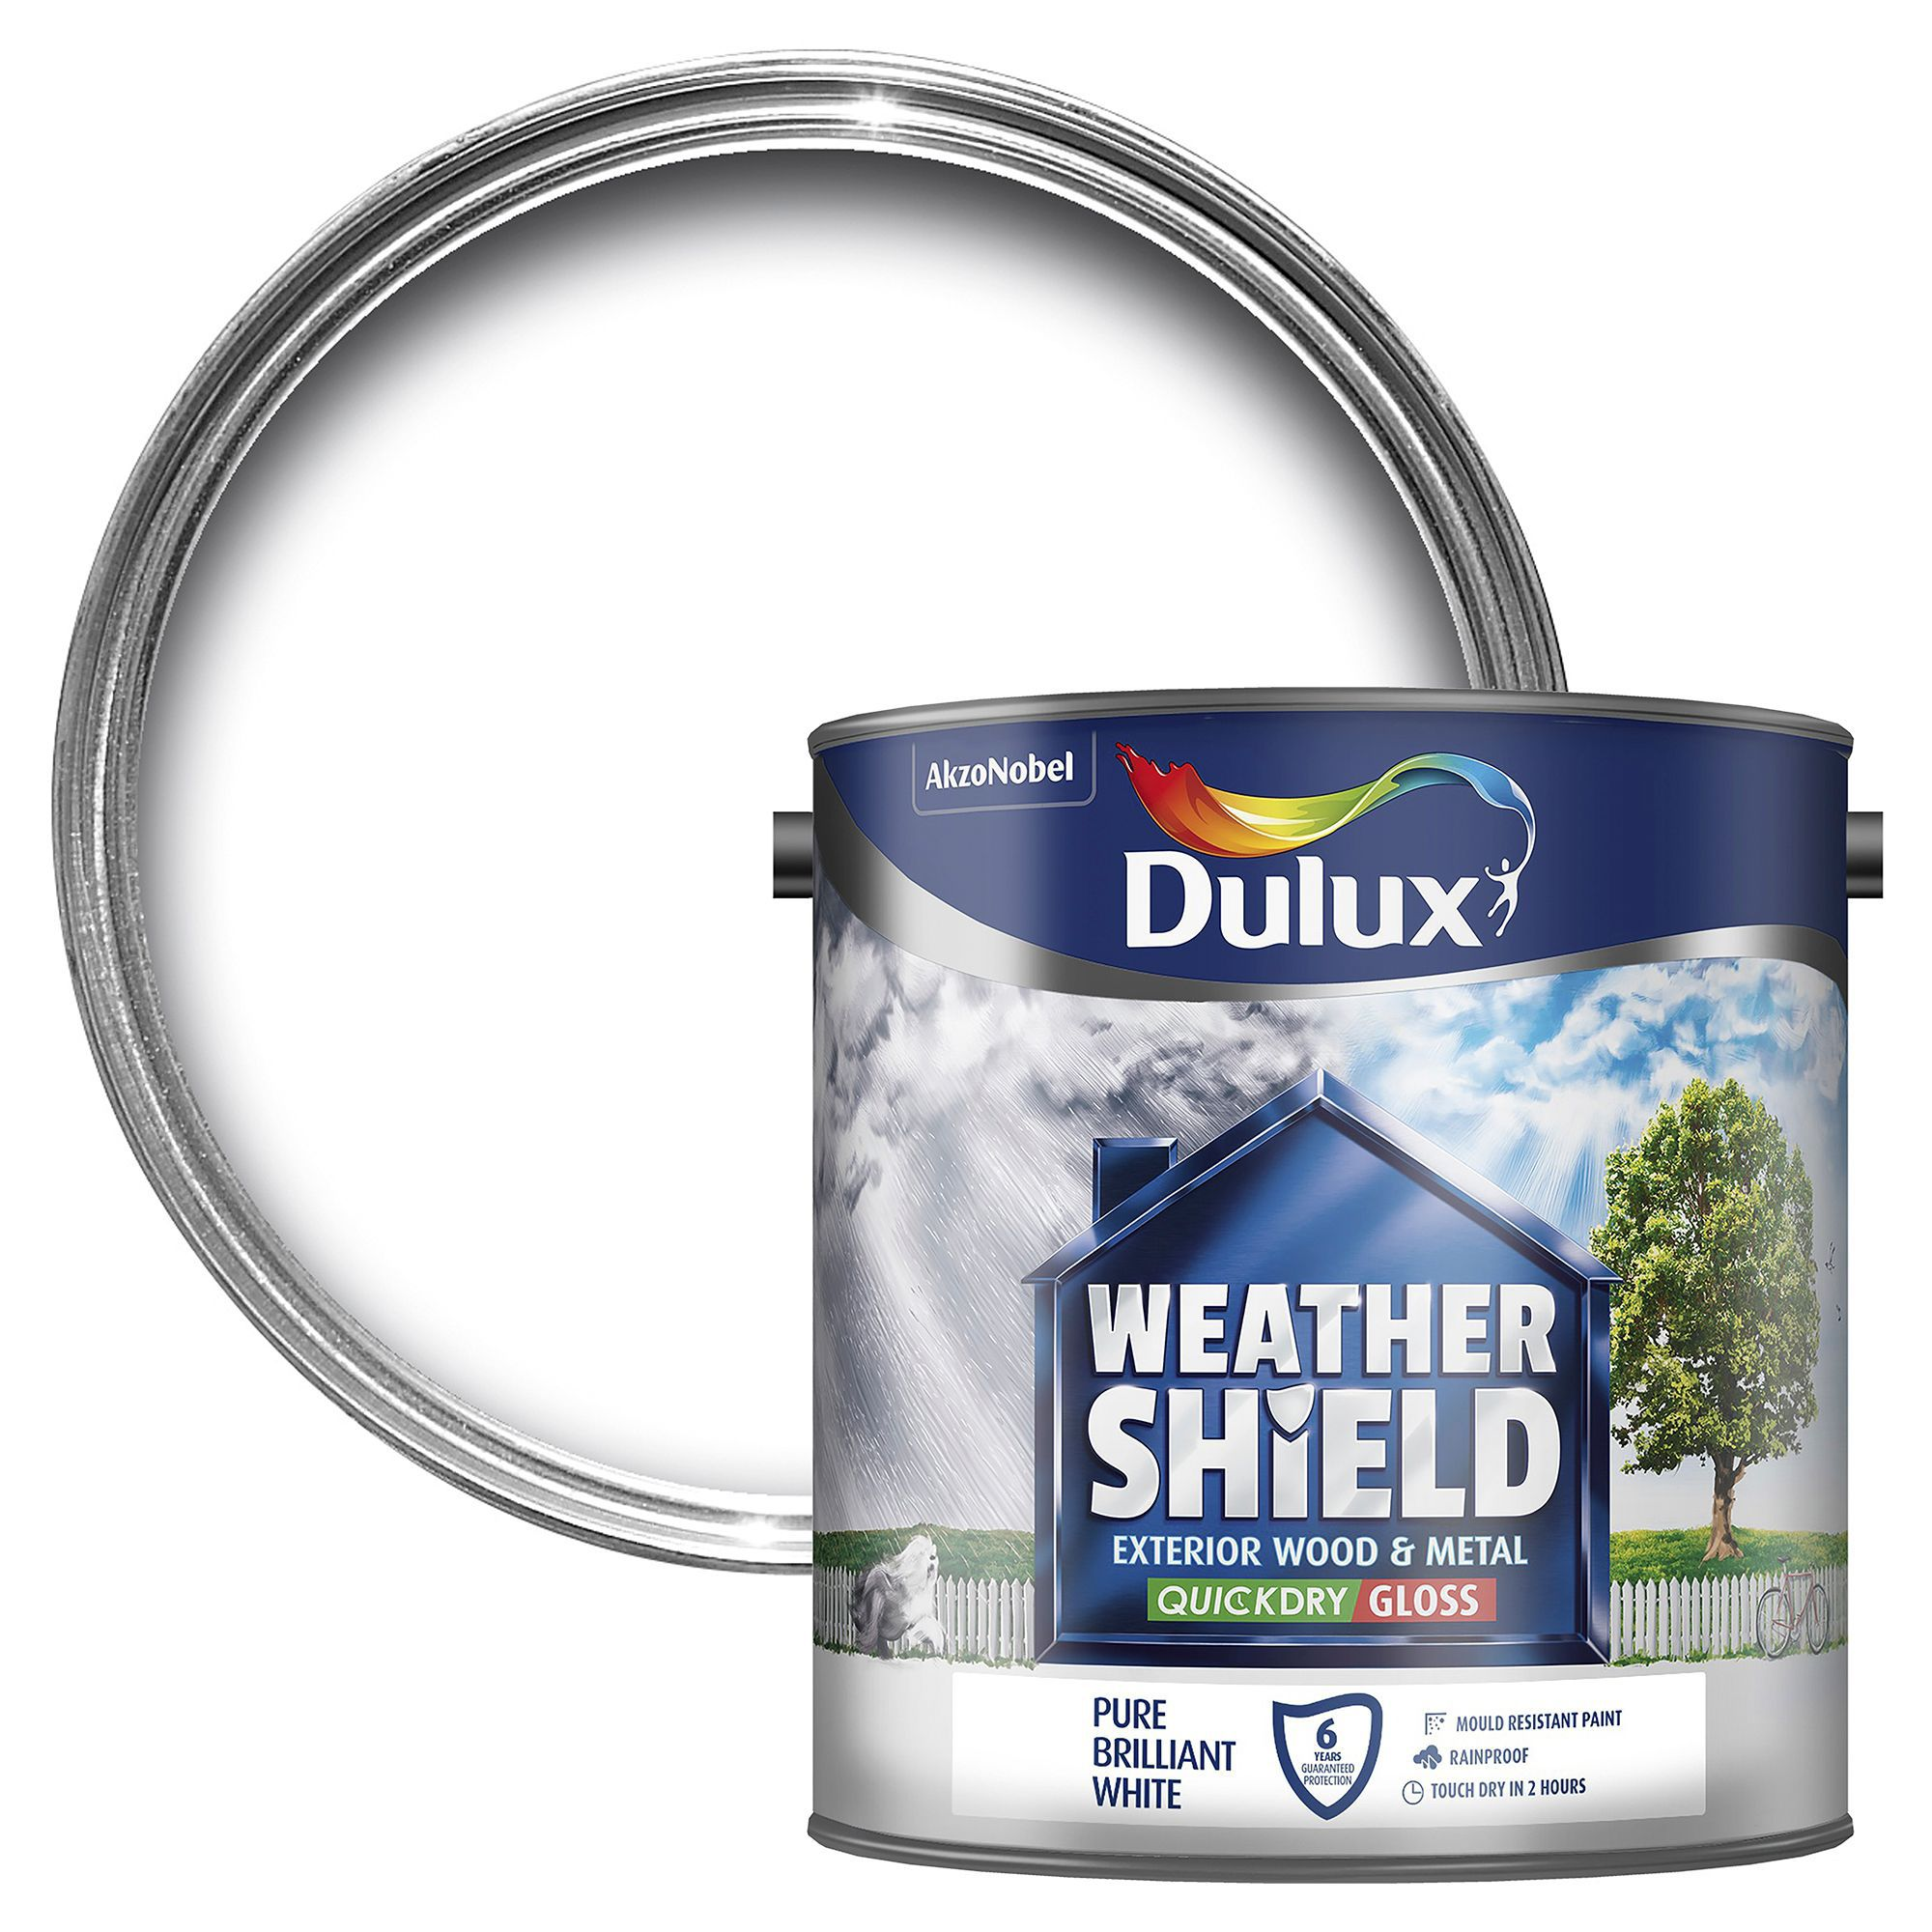 Dulux Weathershield Exterior Pure Brilliant White Gloss Wood & Metal Paint 2.5l